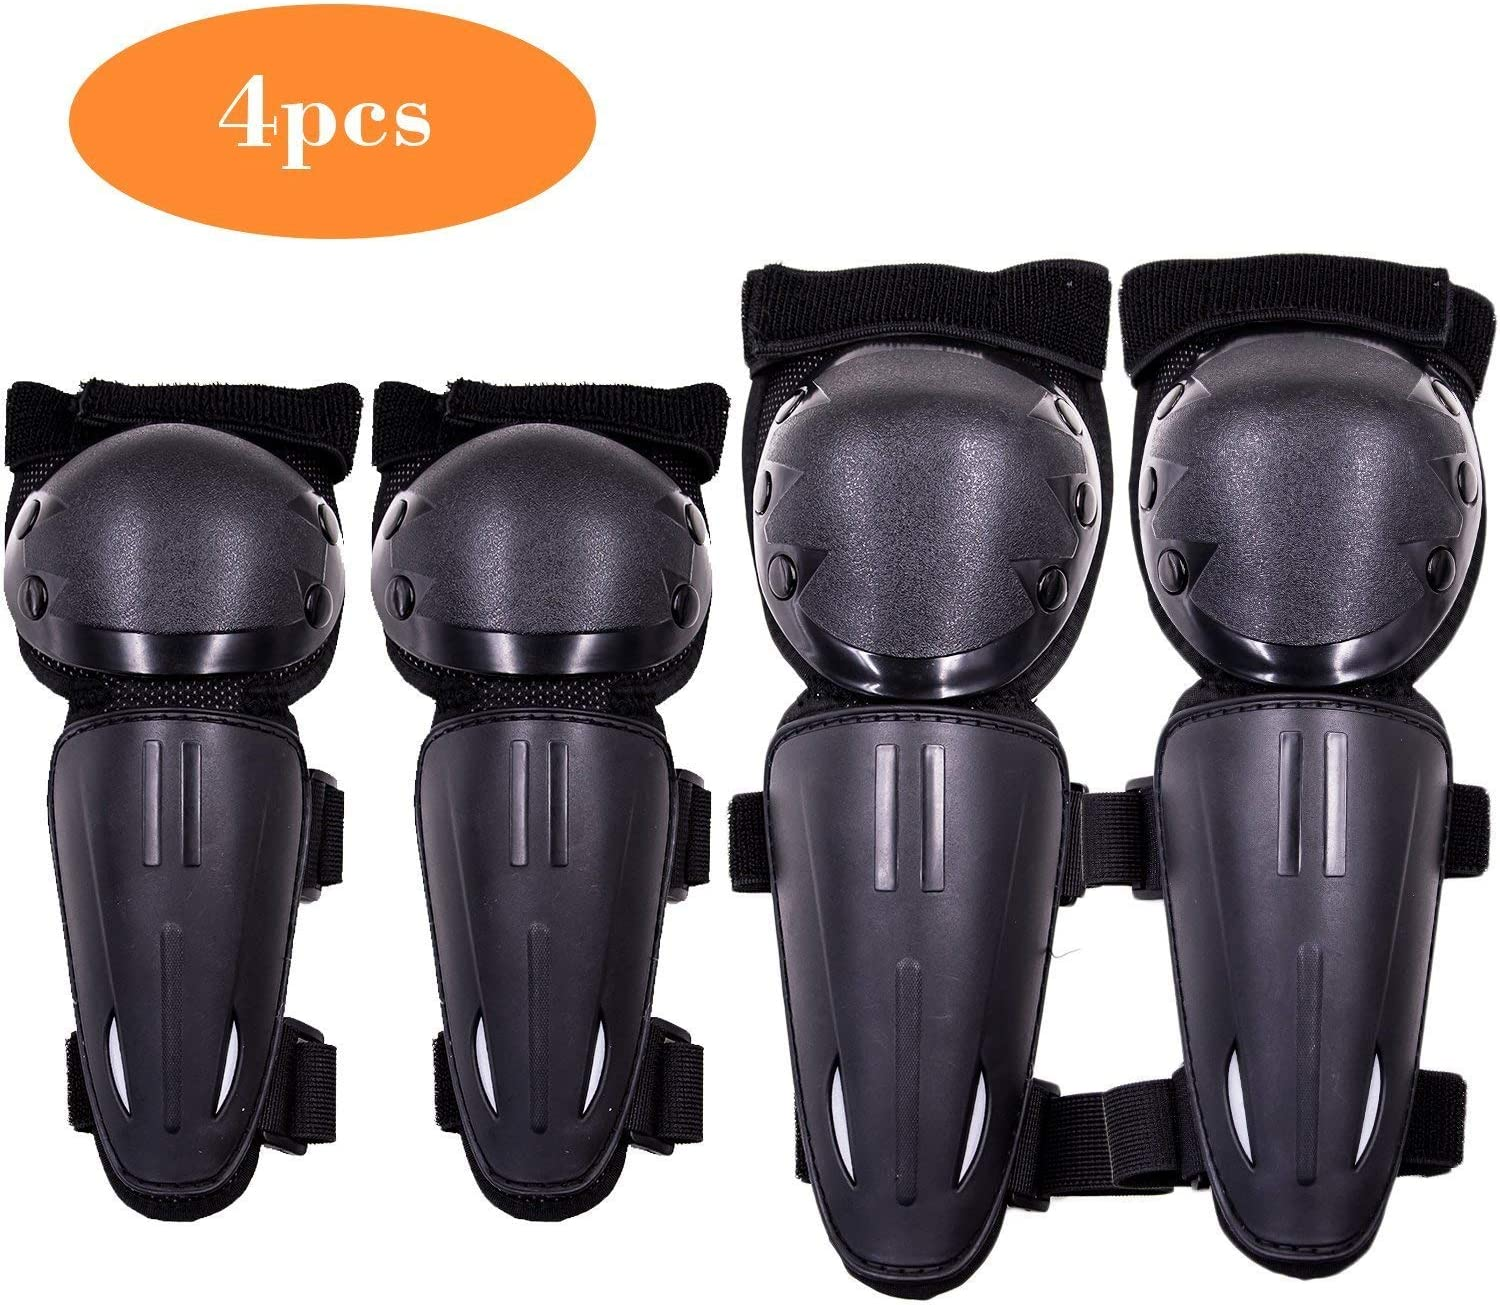 Webetop Kids Dirt Bike Knee And Elbow Pads Shin Guards Youths Protective Gear Set Armor Vest Protector for Dirt Bike Mountain Bike Off-Road Racing Adult L